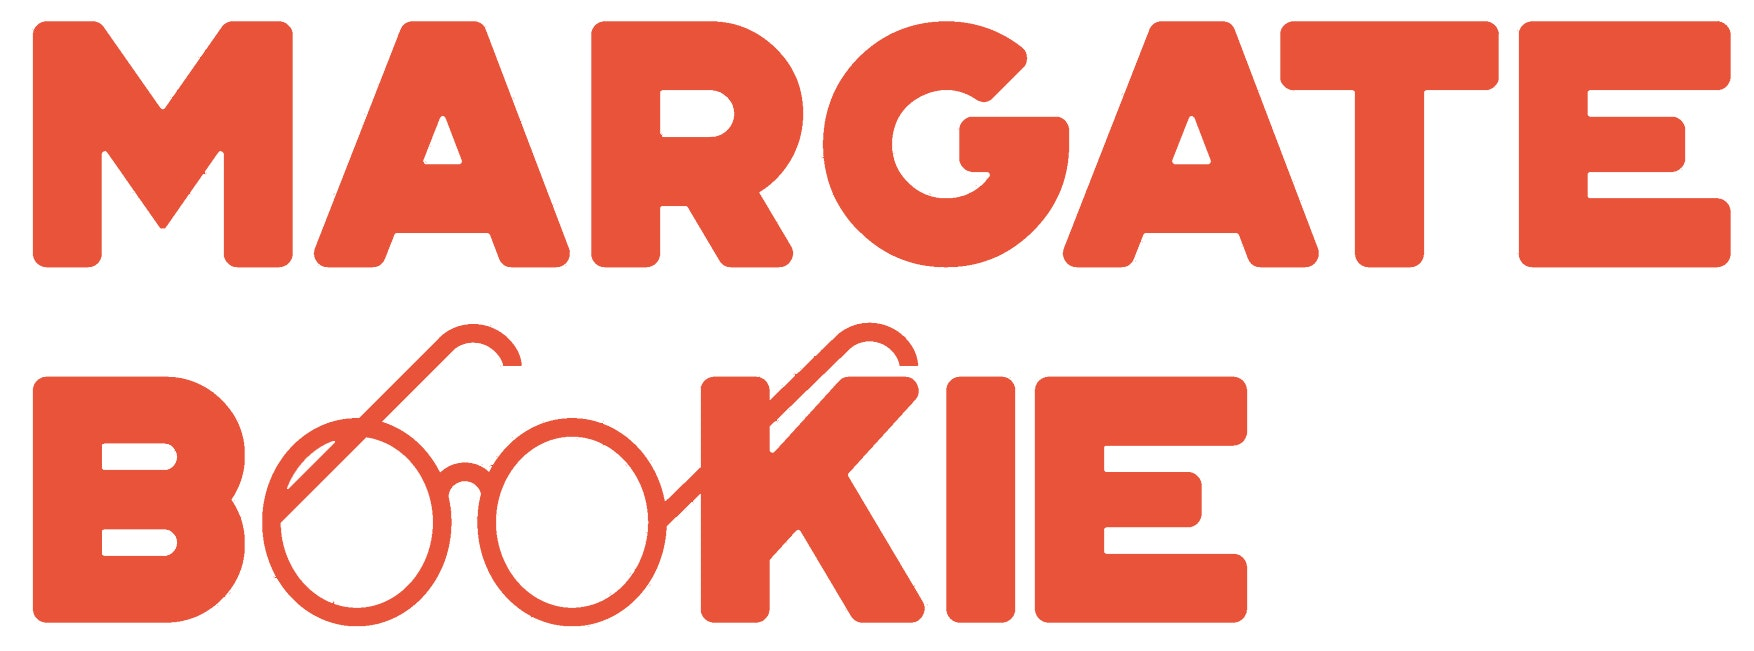 The Margate Bookie - September 2018